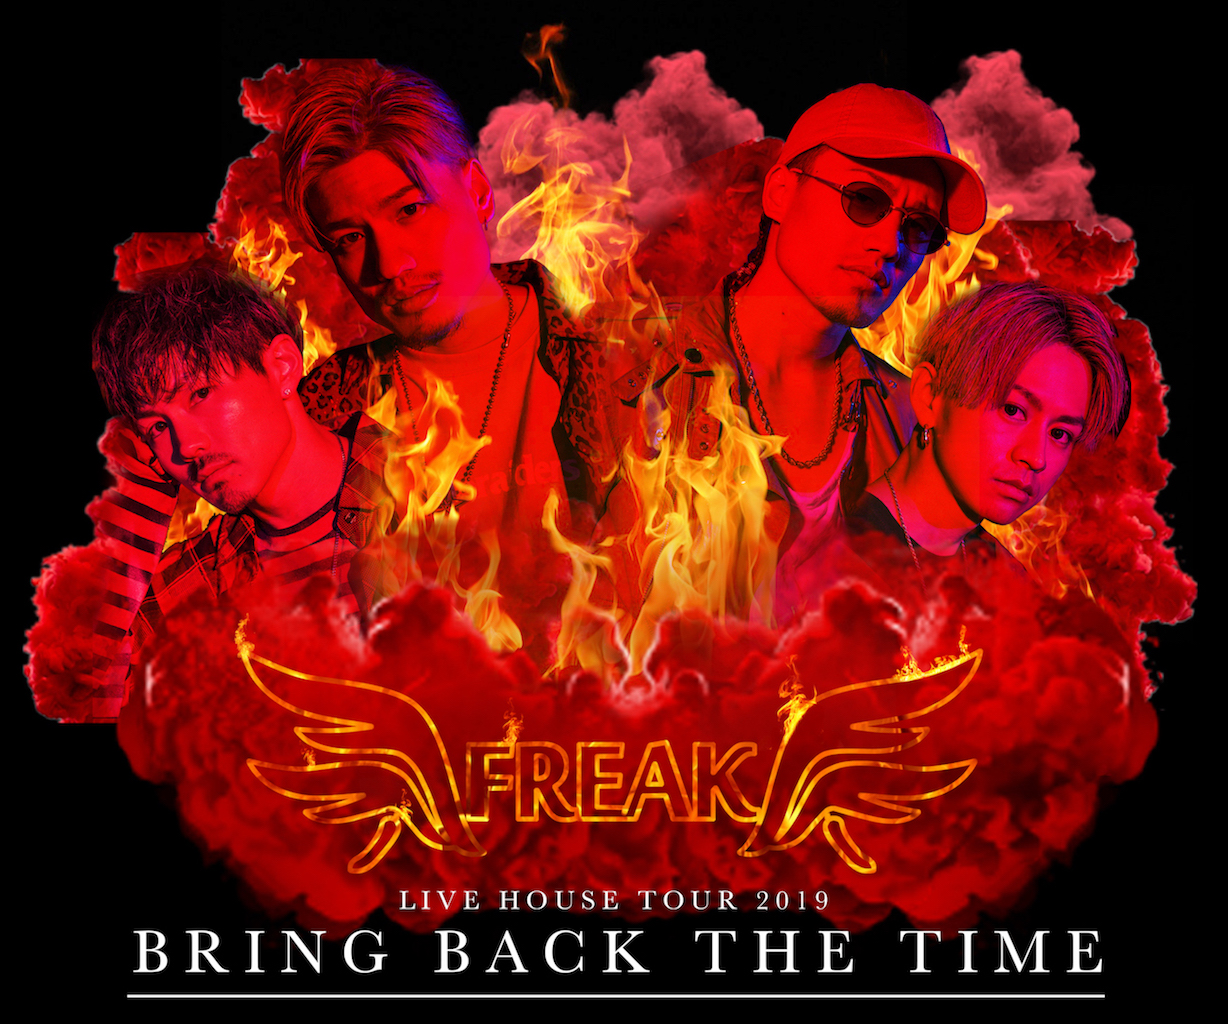 FREAK LIVE HOUSE TOUR 2019 [BRING BACK THE TIME]東京公演